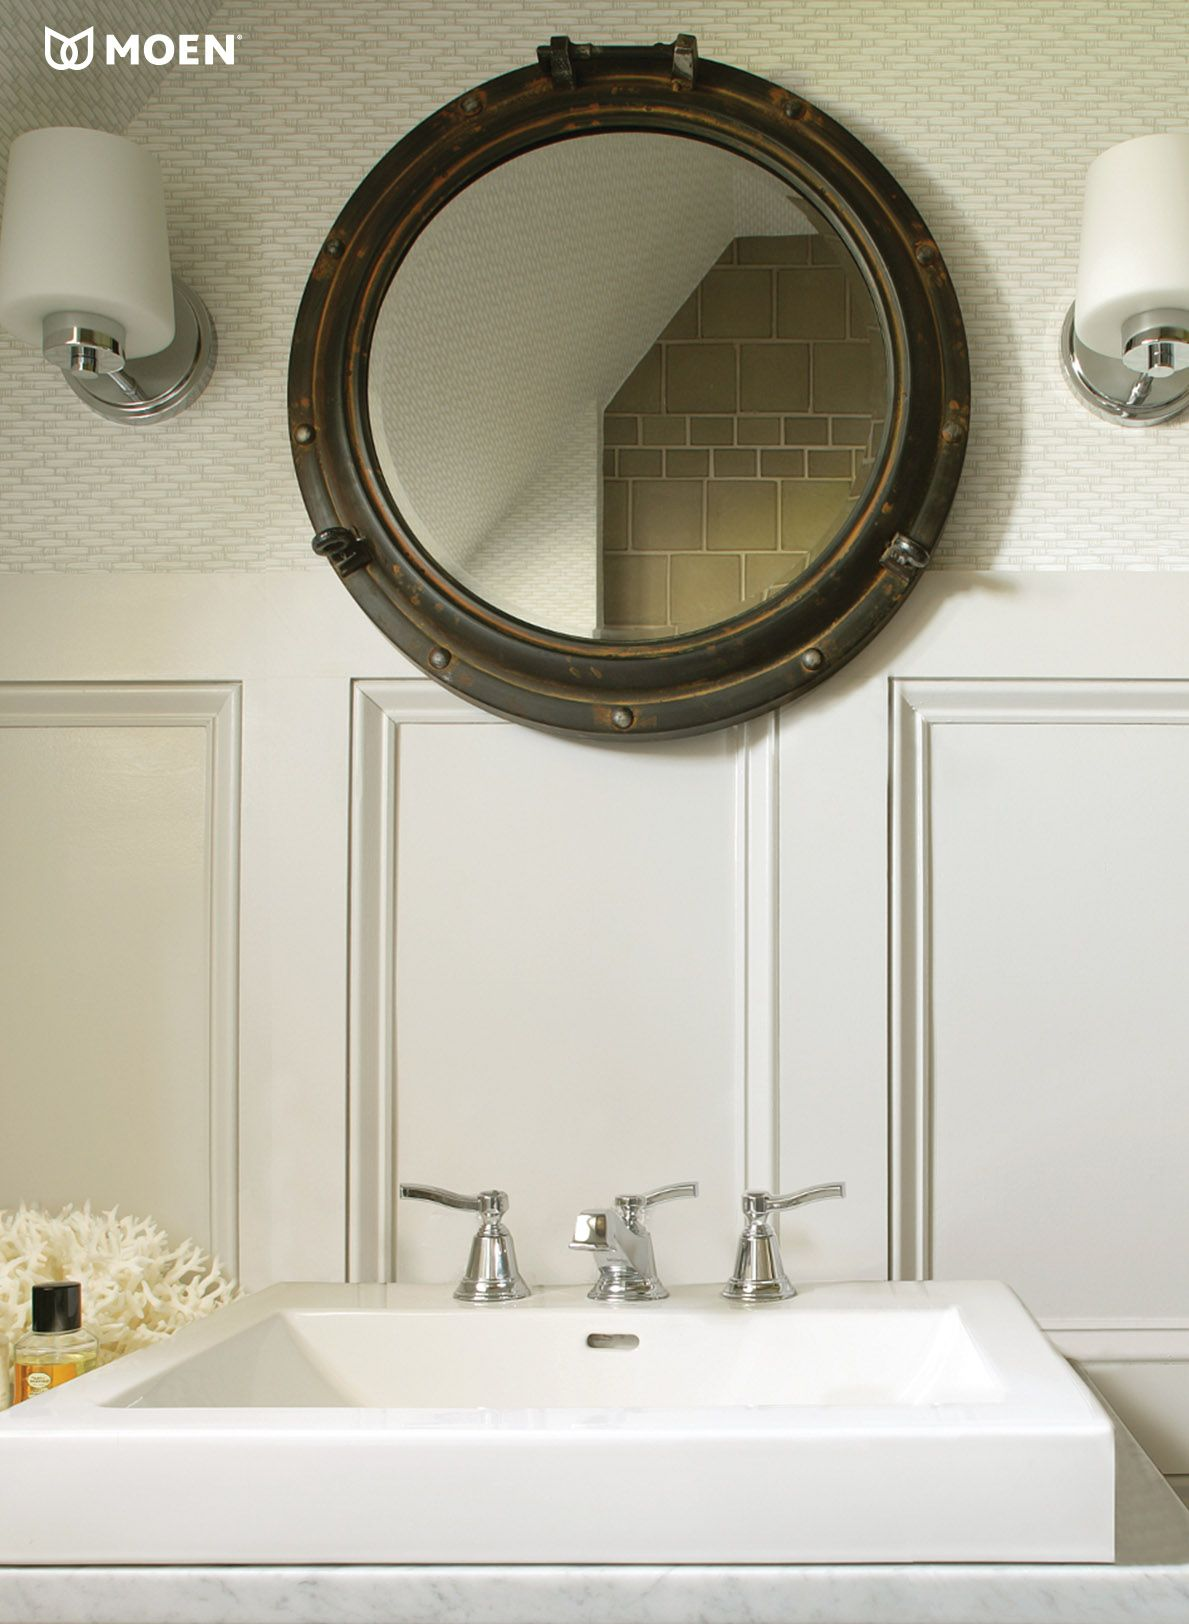 Salle De Bain Parement Beige ~ Our Rothbury Faucet Works Perfectly In This Early To Mid 20th